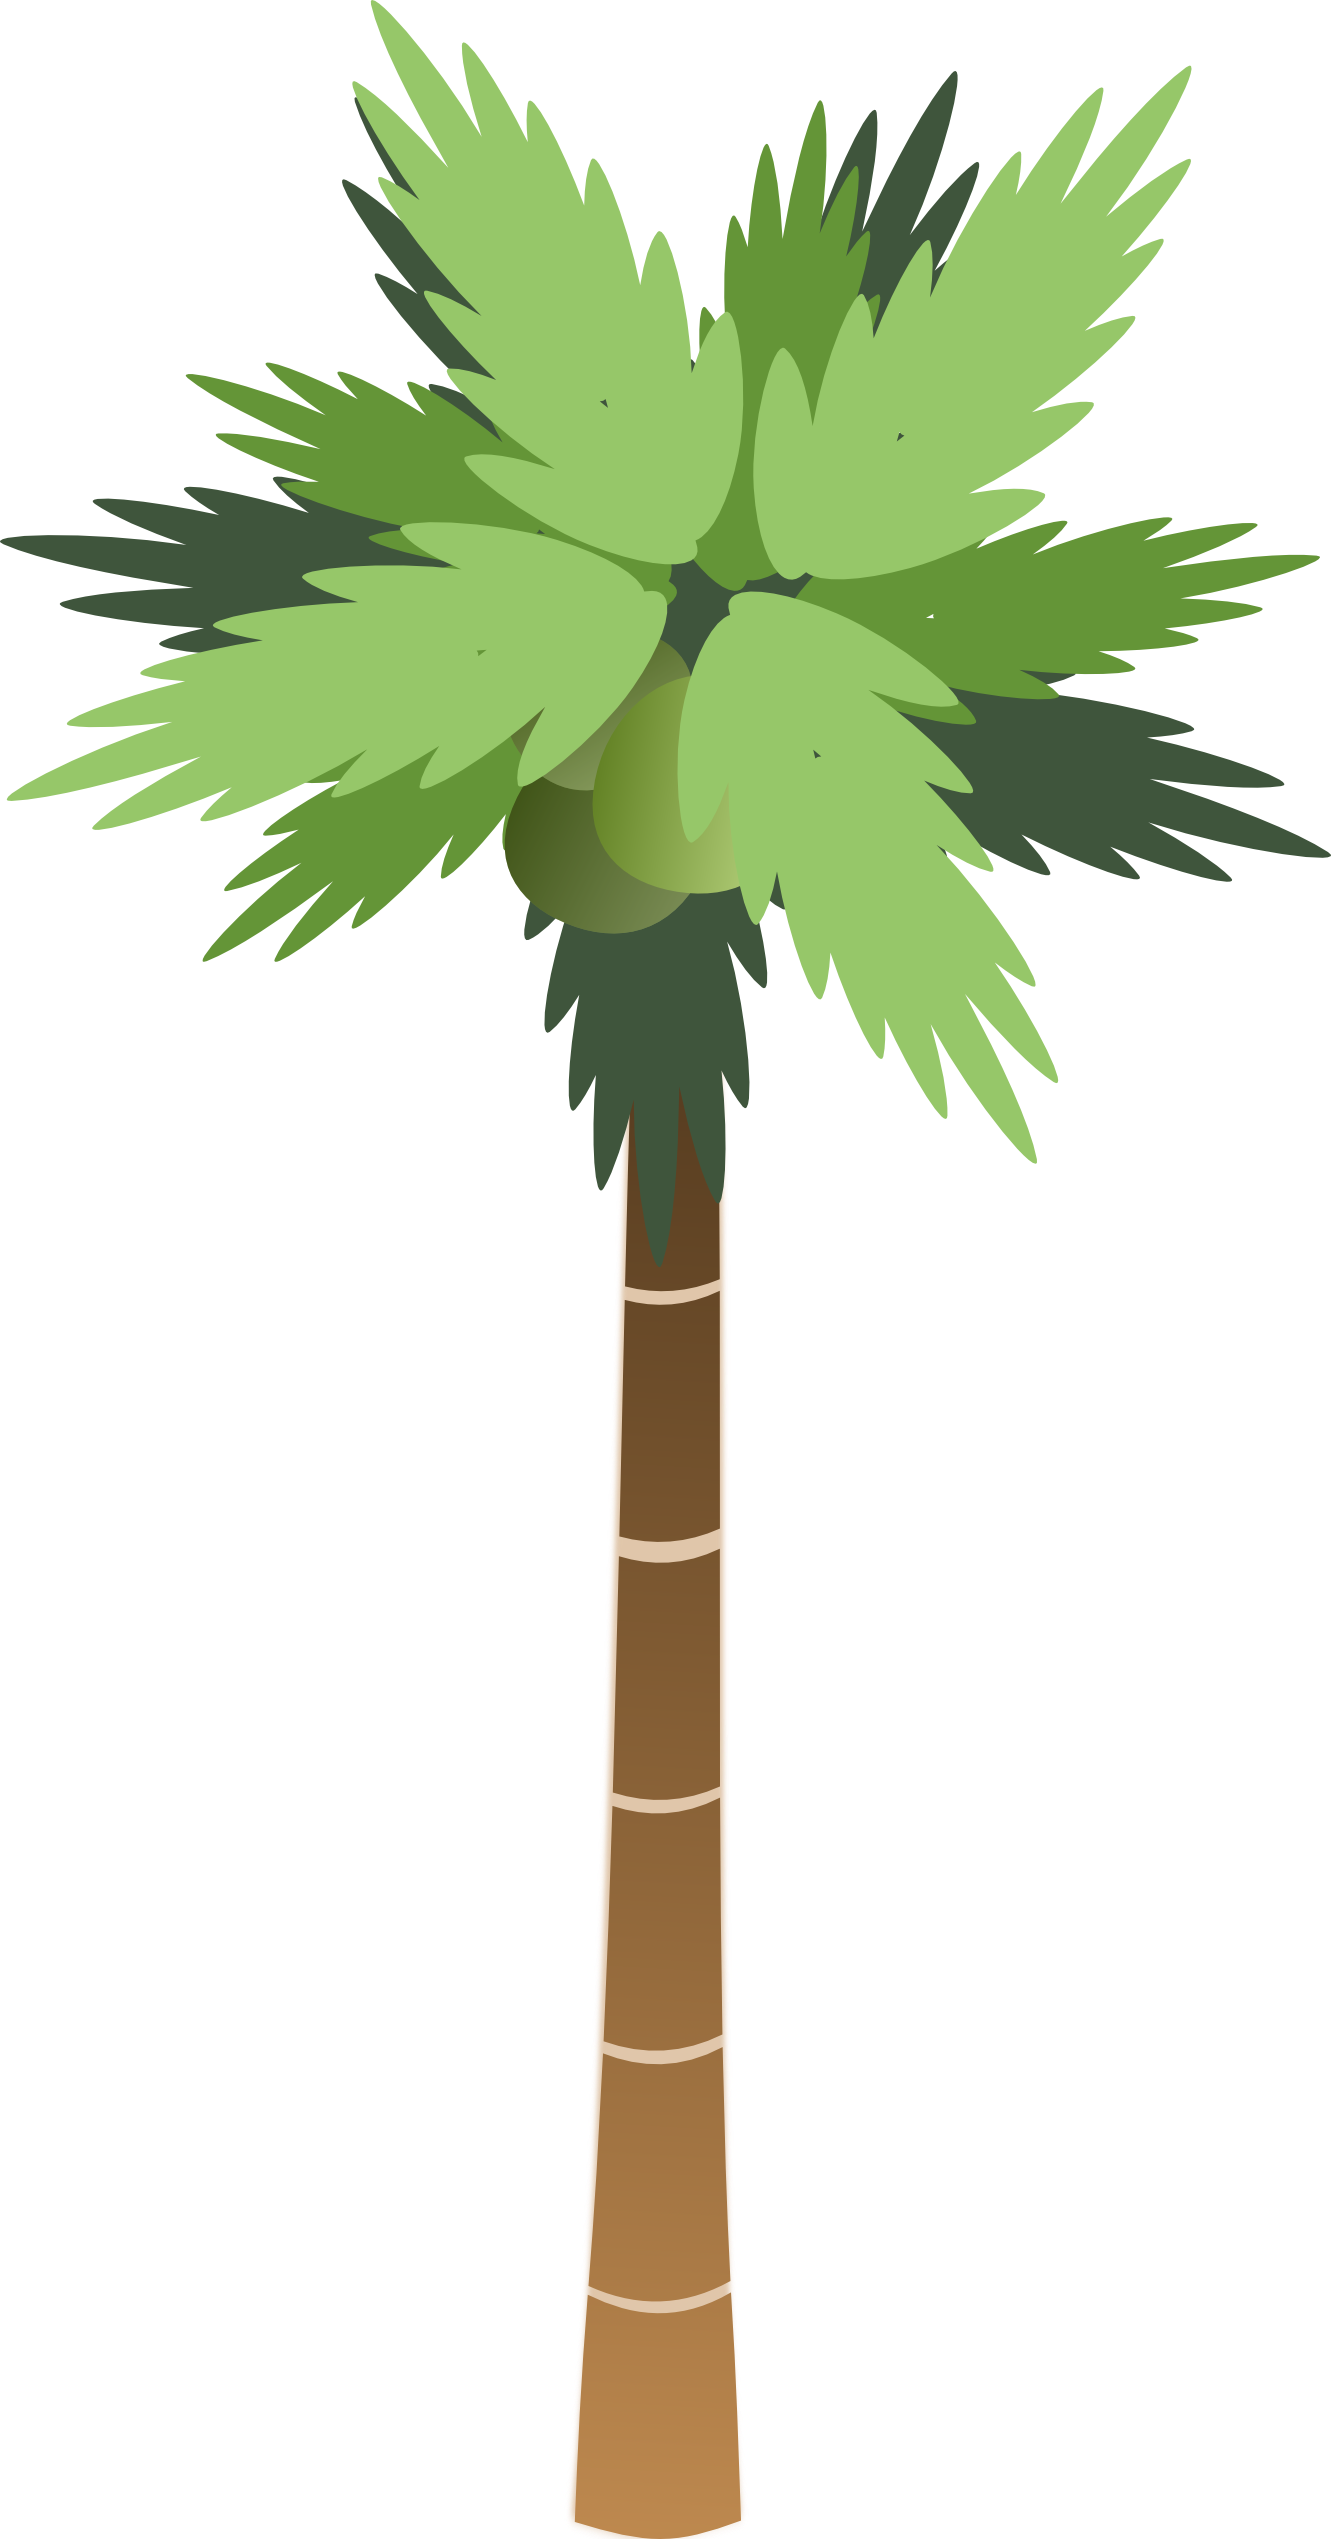 palm-tree-no-background-palm_tree_2-1331px.png